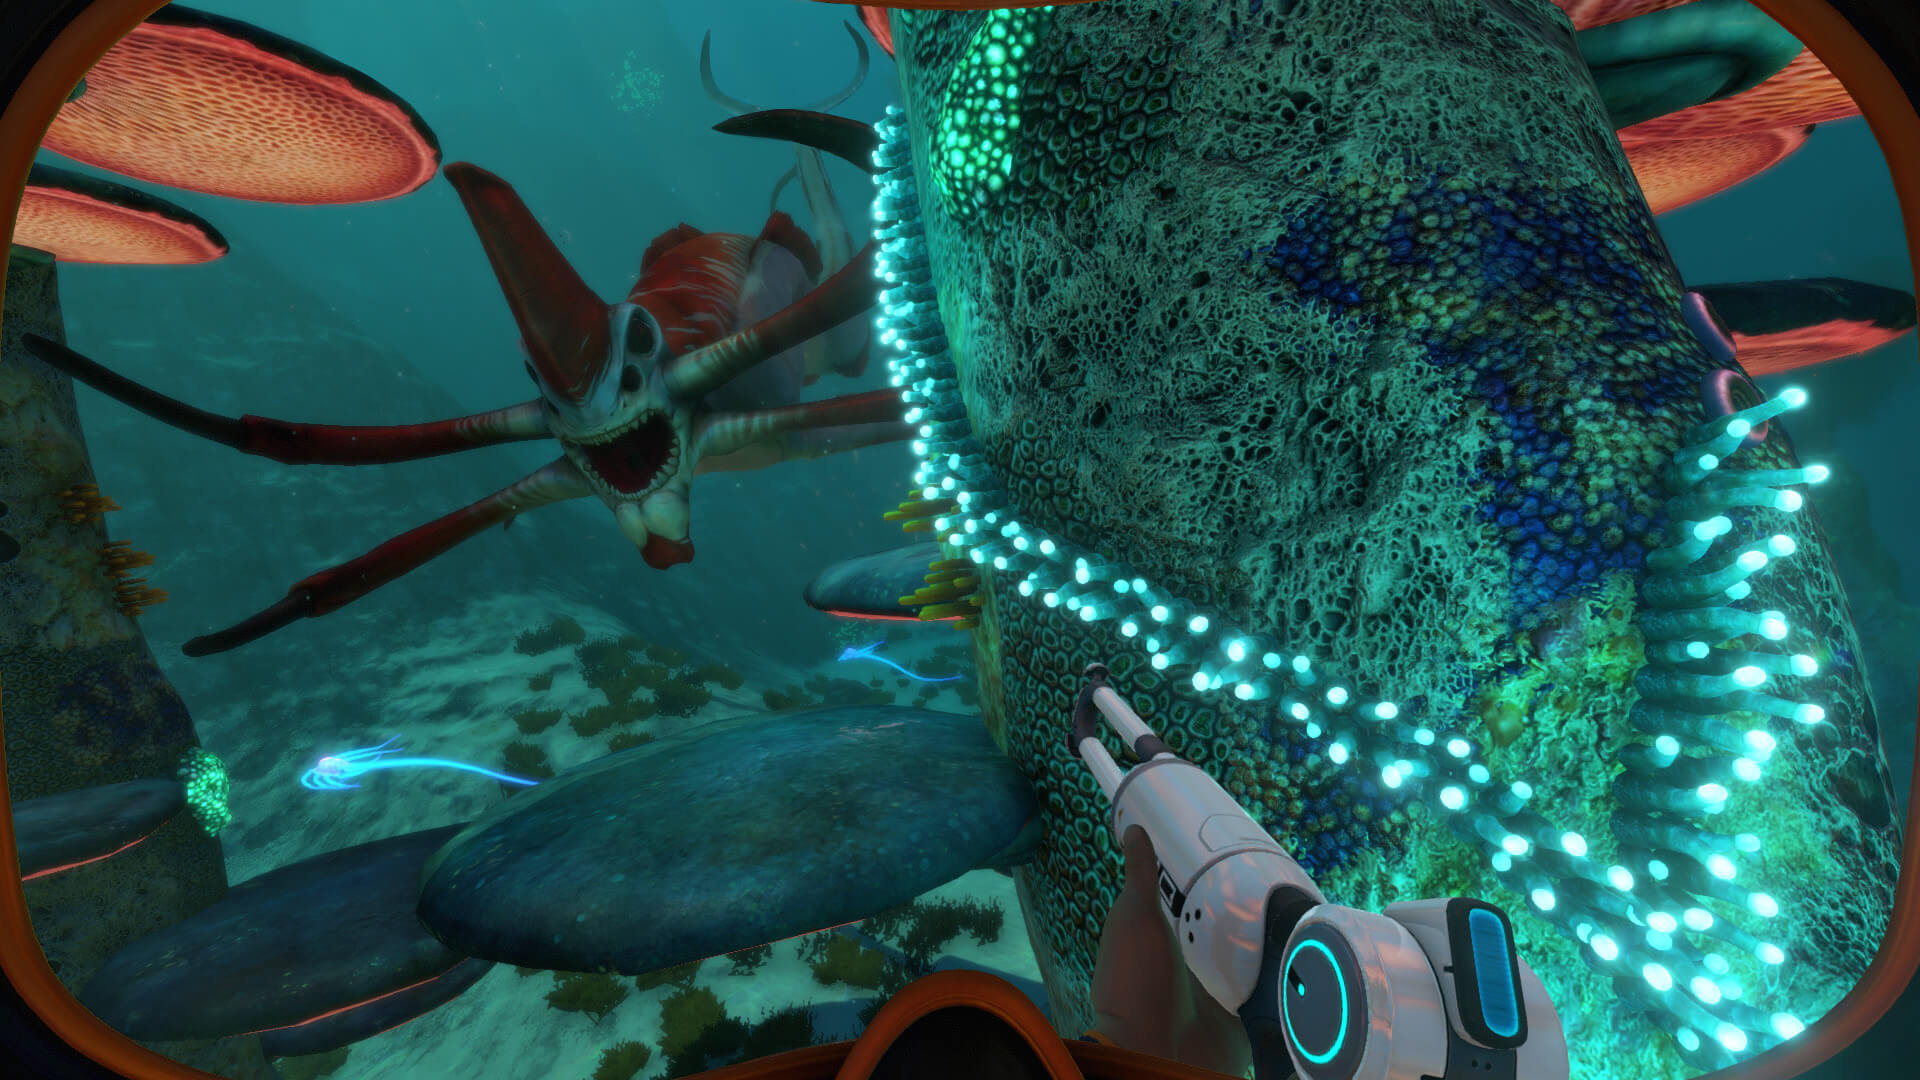 Subnautica Bulb Zone Base